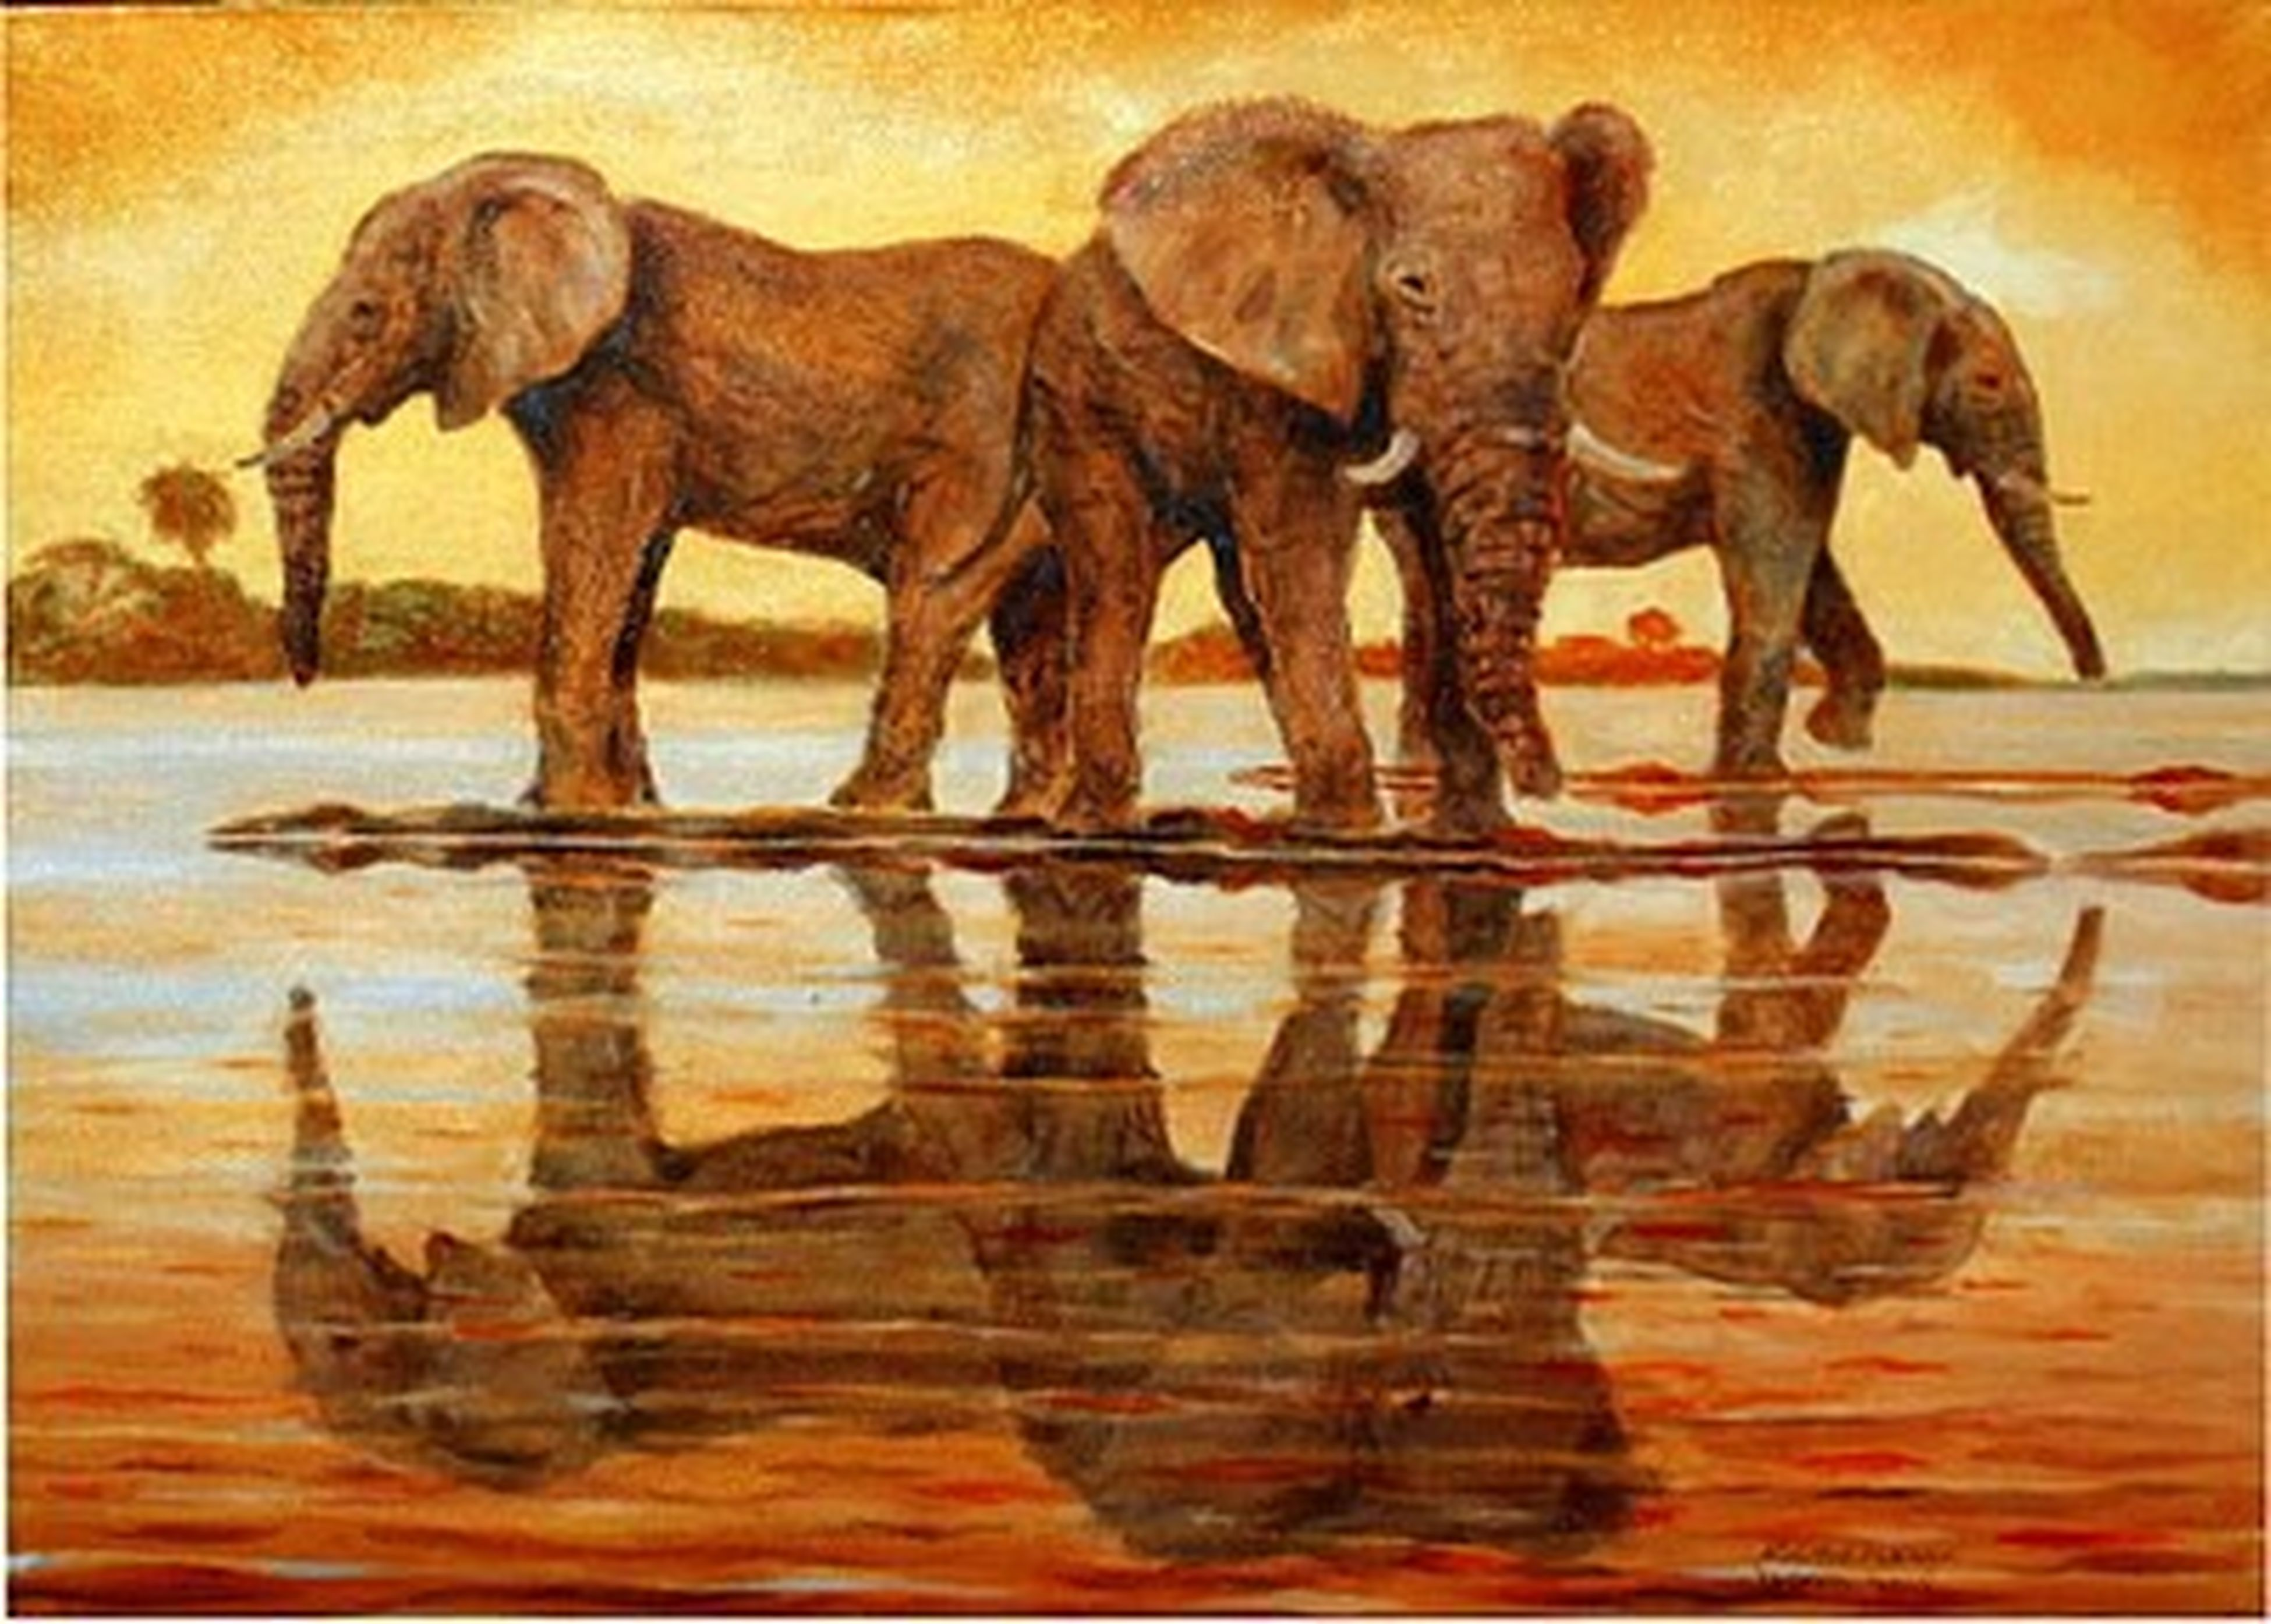 animal themes, mammal, domestic animals, one animal, two animals, animals in the wild, wildlife, horse, zoology, three animals, standing, water, reflection, full length, animals in captivity, side view, no people, livestock, day, elephant